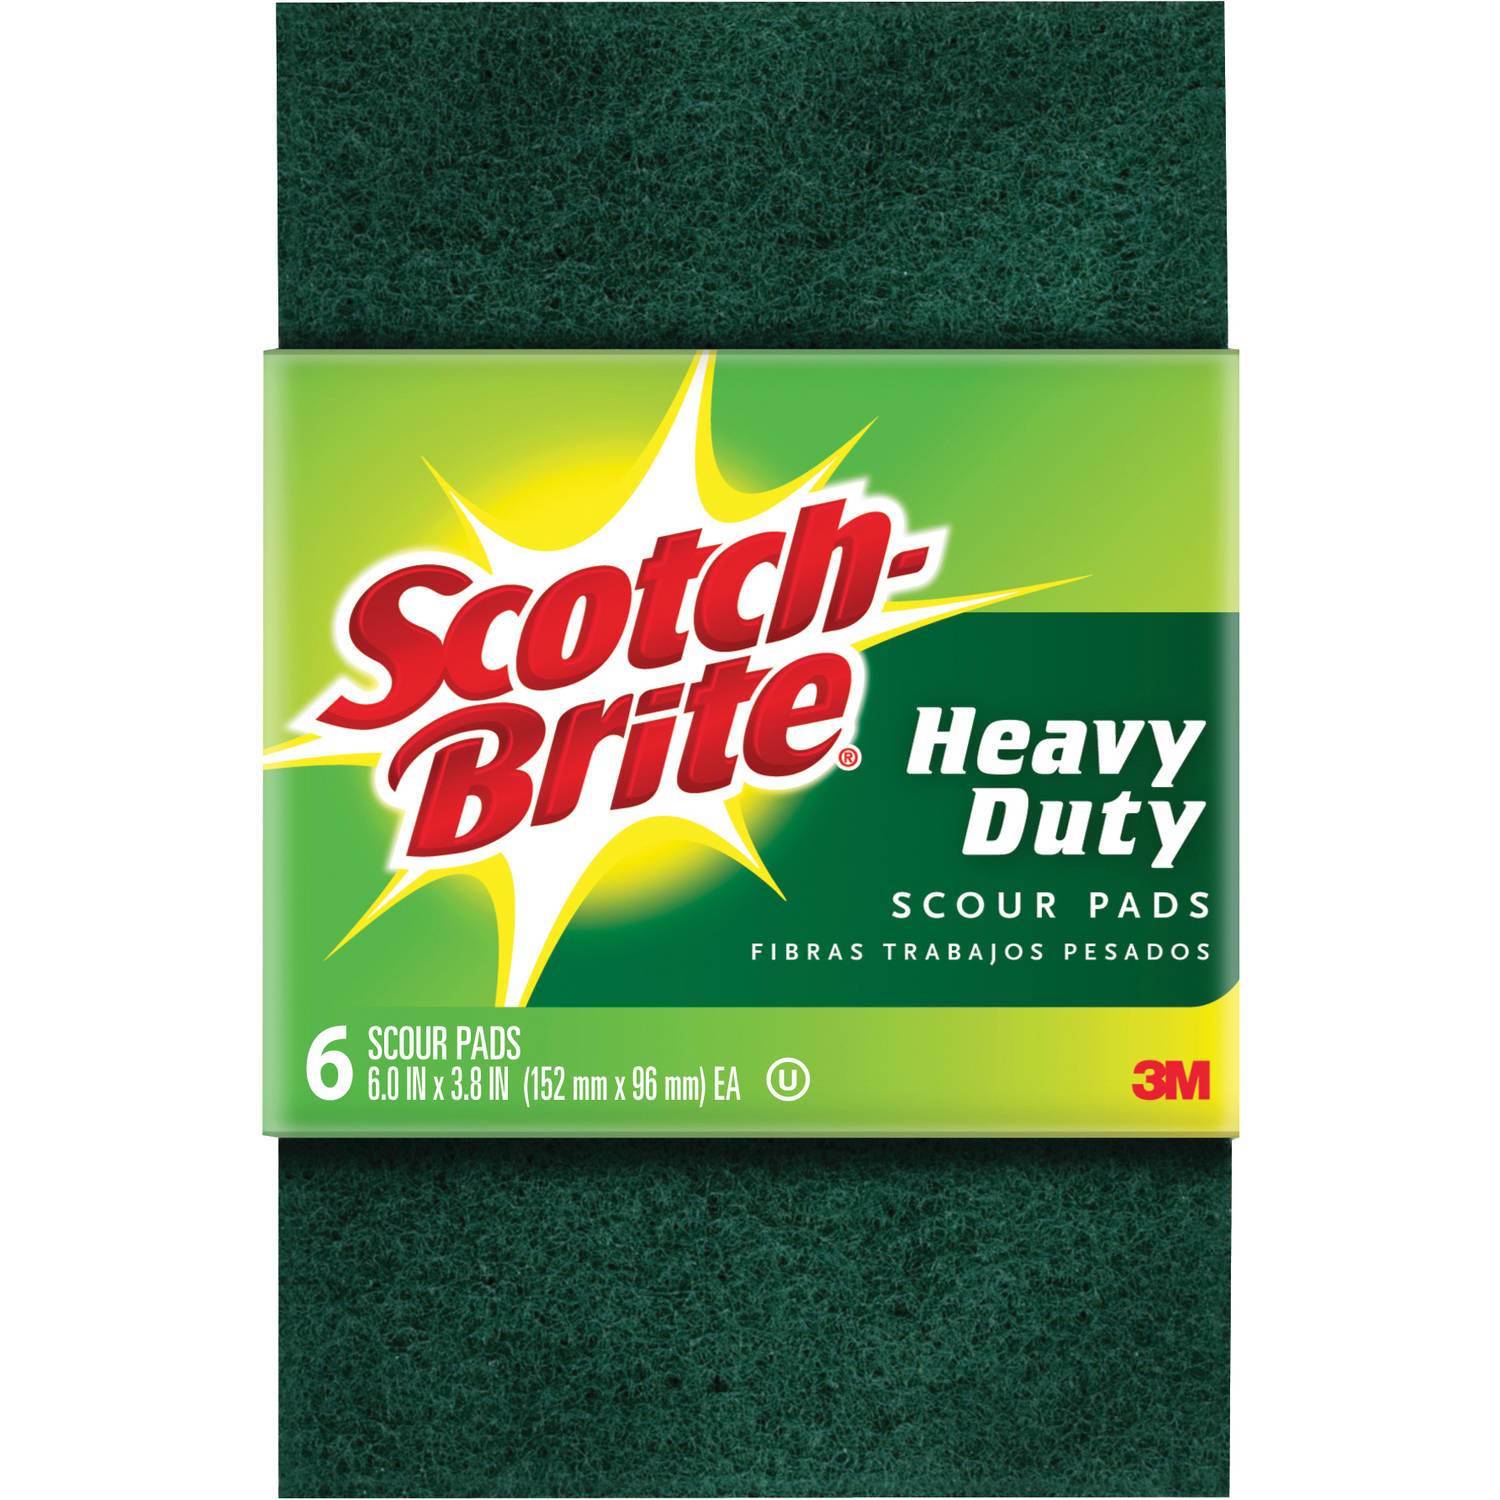 Scotch-Brite Heavy Duty Scour Pads, 6pk